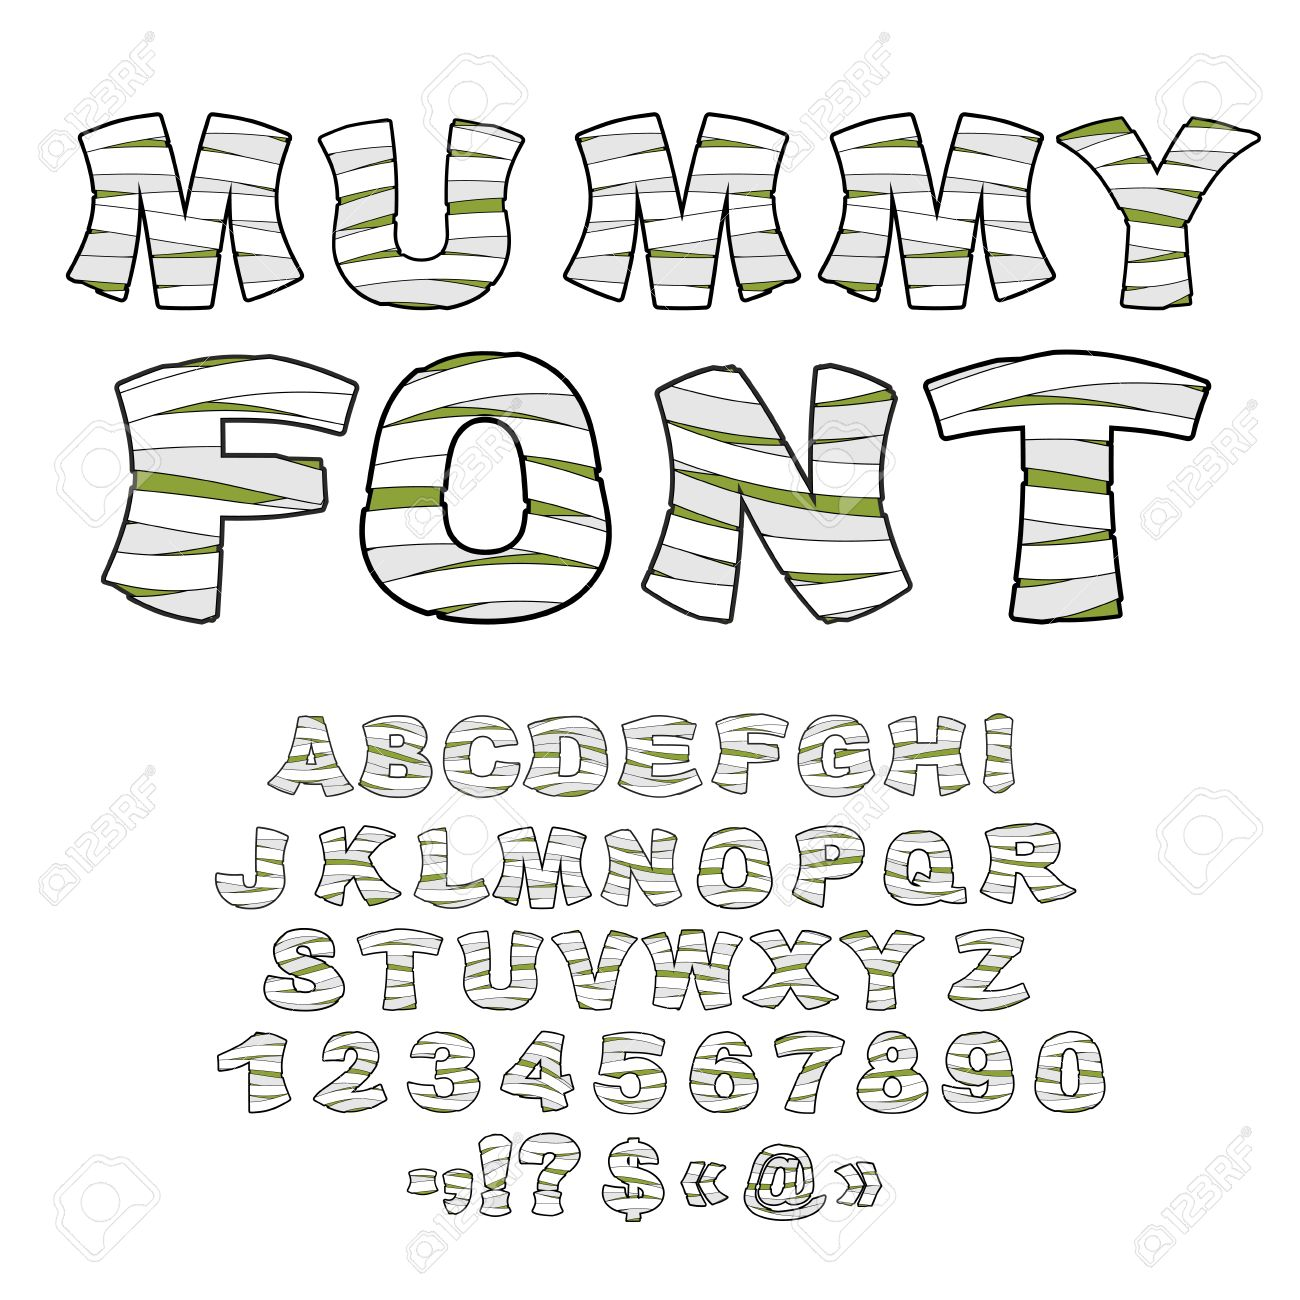 Mummy Font Alphabet In Bandages Monster Zombie Letters Of Latin Learned Embalming